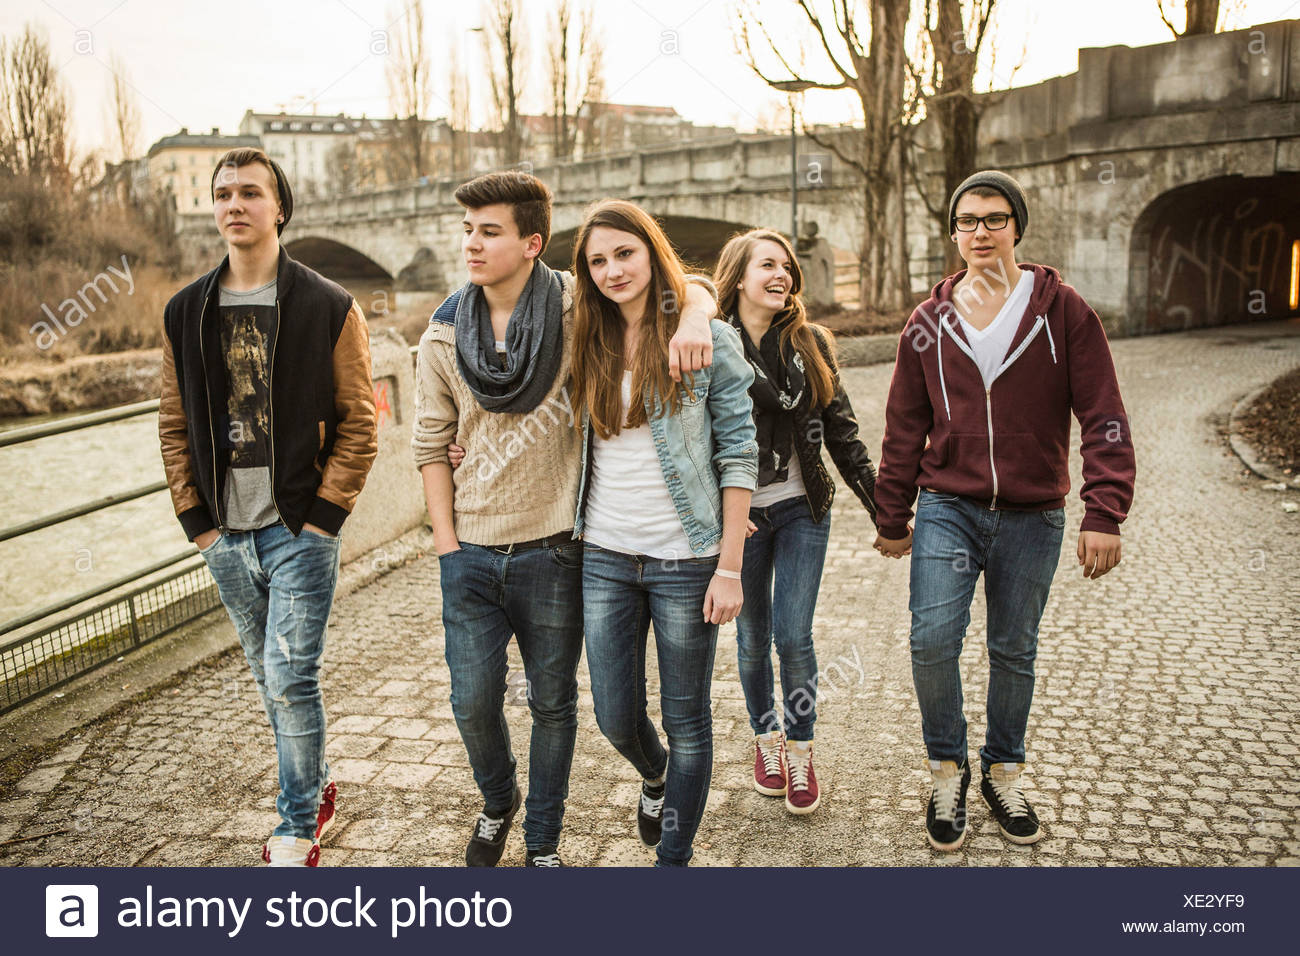 Five teenagers walking together beside river - Stock Image